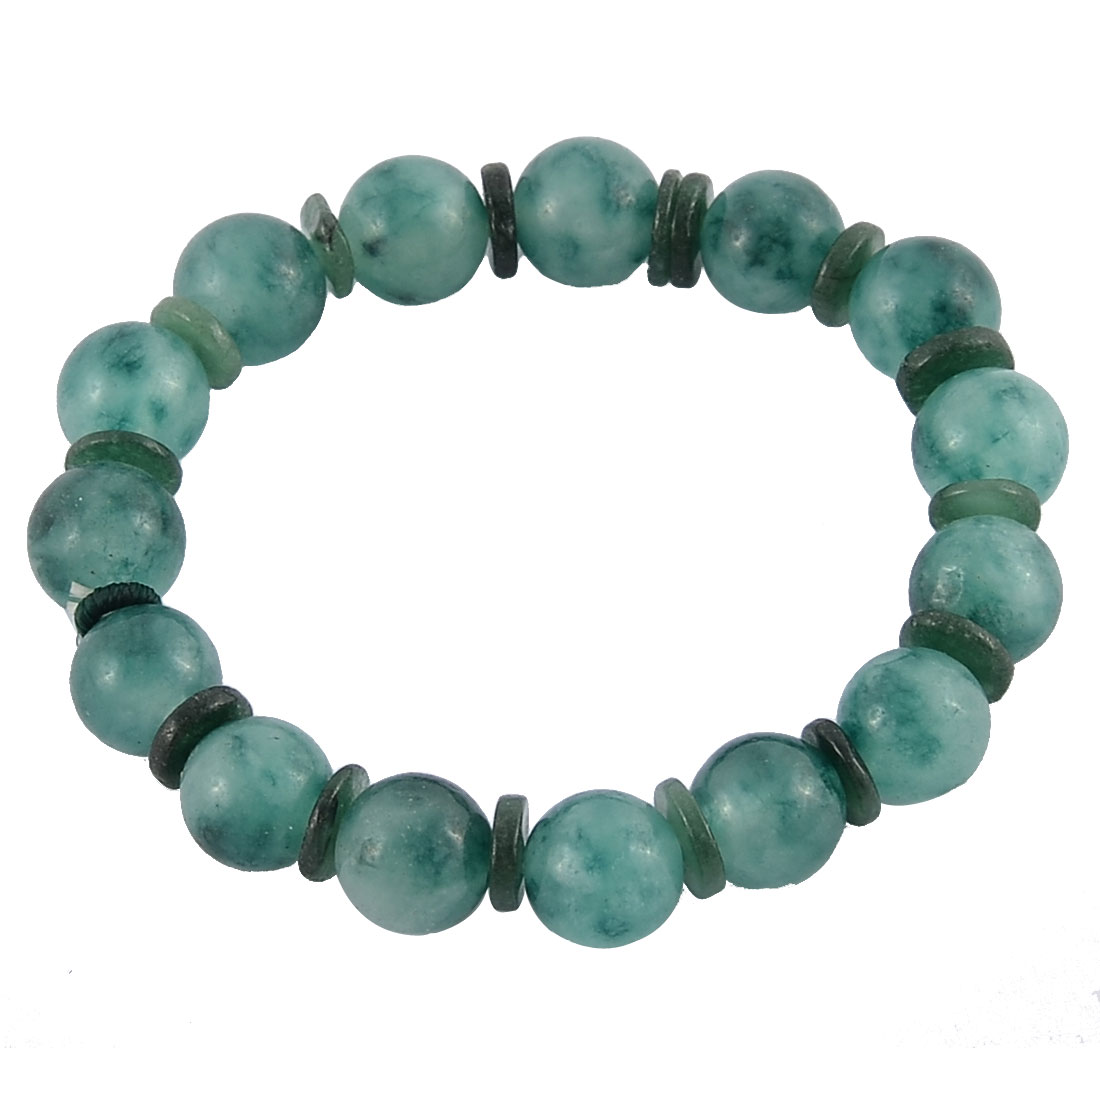 Faux Jade Elastic Round Beaded Wrist Decor Chain Bangle Bracelet Dark Green